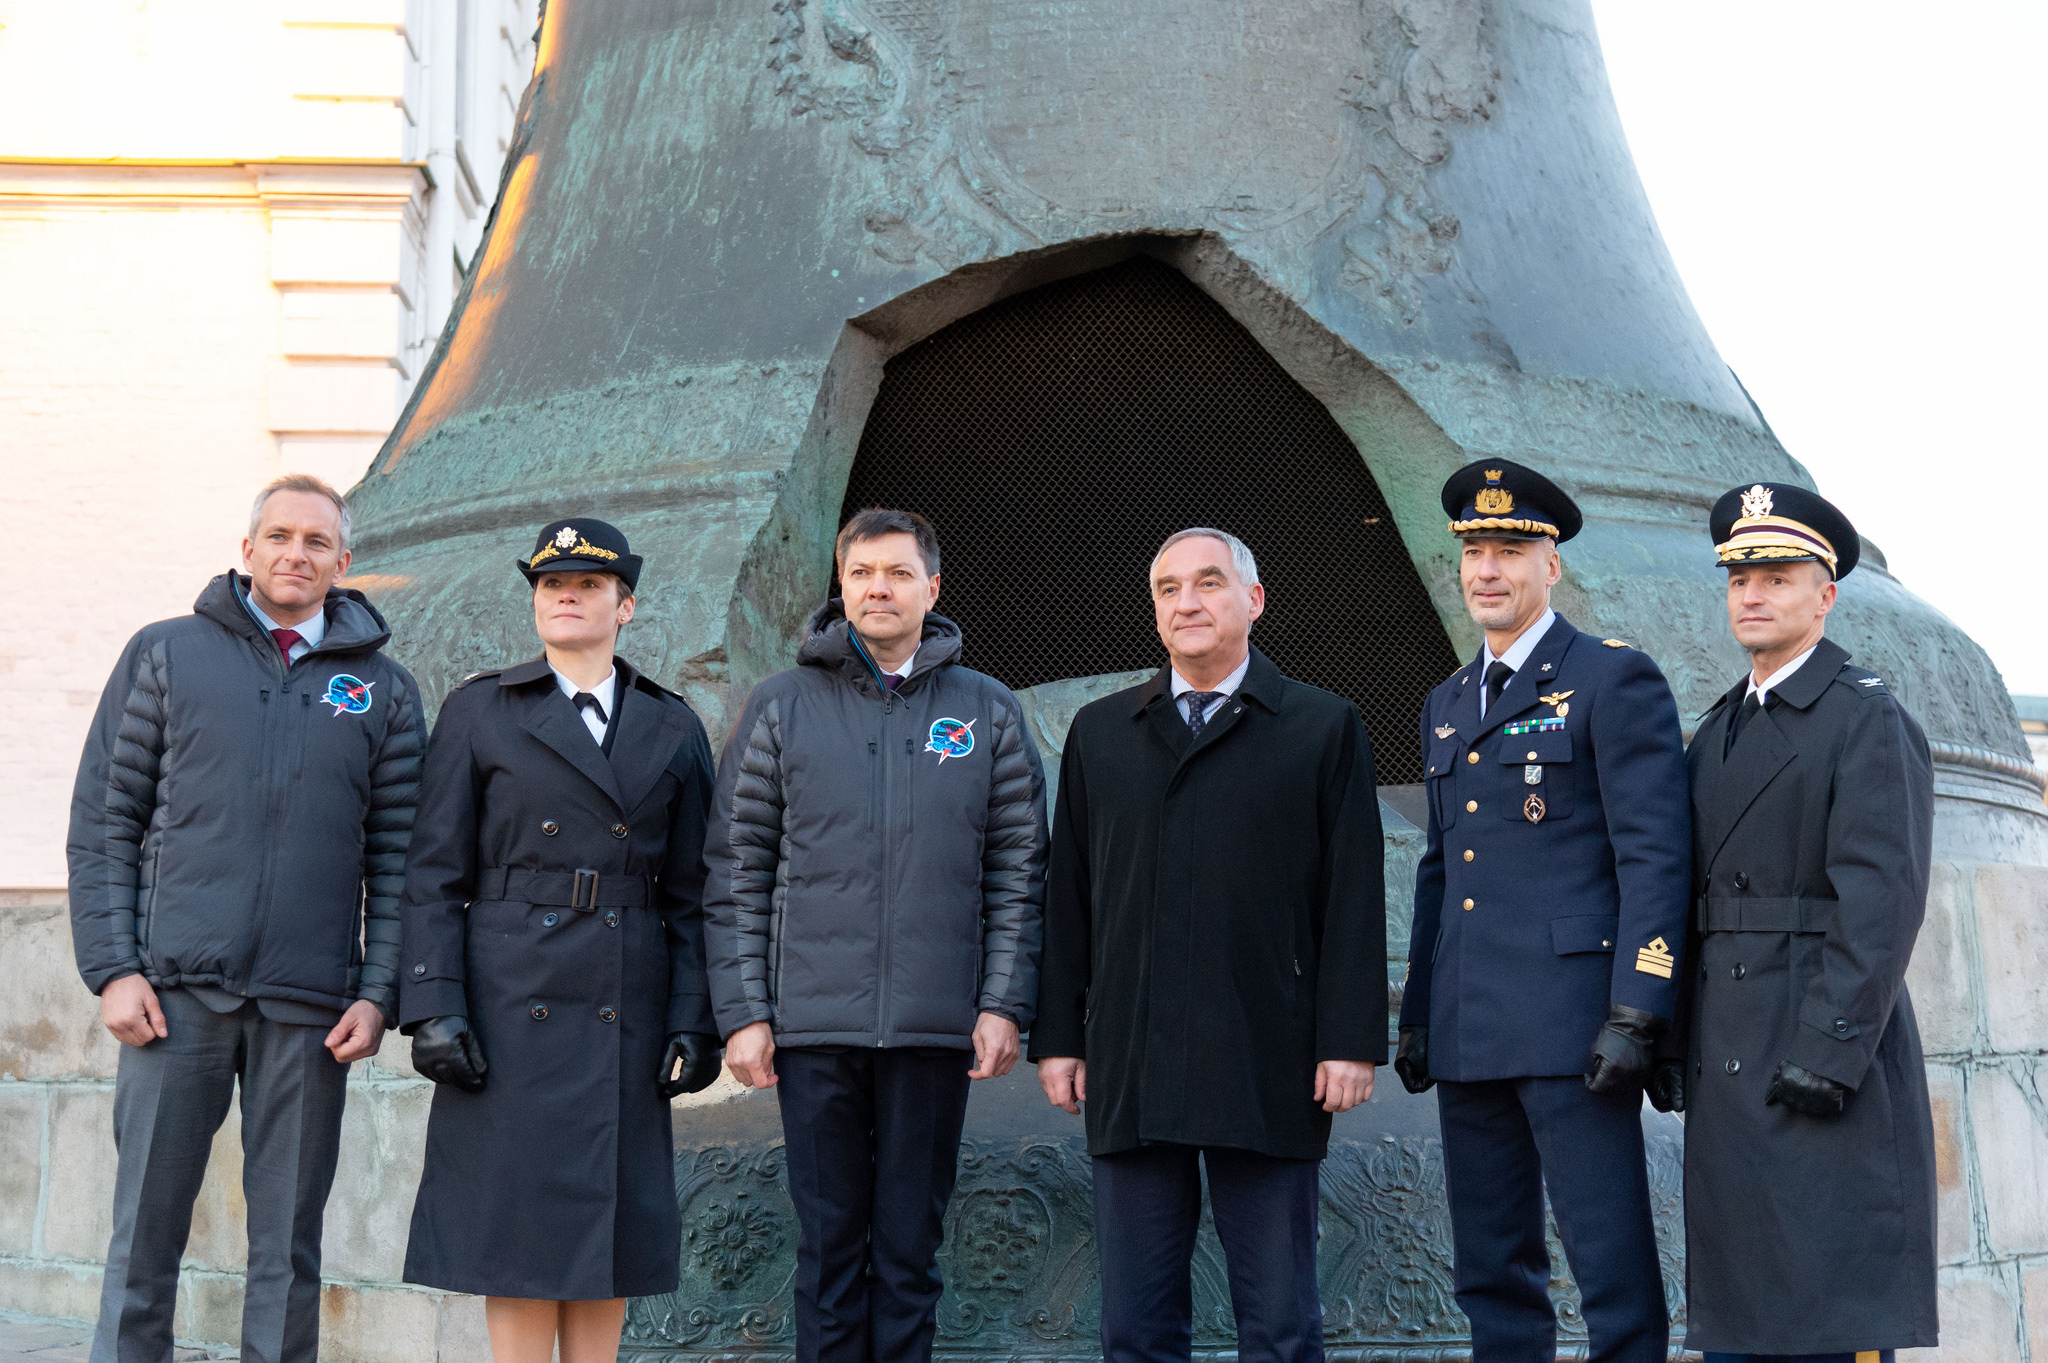 The Expedition 58 prime and backup crew members pose for pictures Nov. 15 in front of the Tsar Bell at the Kremlin in Moscow in traditional ceremonies. Front left to right are the prime crewmembers, David Saint-Jacques of the Canadian Space Agency, Anne McClain of NASA and Oleg Kononenko of Roscosmos, and the backup crew members, Alexander Skvortsov of Roscosmos, Luca Parmitano of the European Space Agency and Drew Morgan of NASA. McClain, Saint-Jacques and Kononenko will launch Dec. 3 on the Soyuz MS-11 spacecraft from the Baikonur Cosmodrome in Kazakhstan for a six-and-a-half month mission on the International Space Station